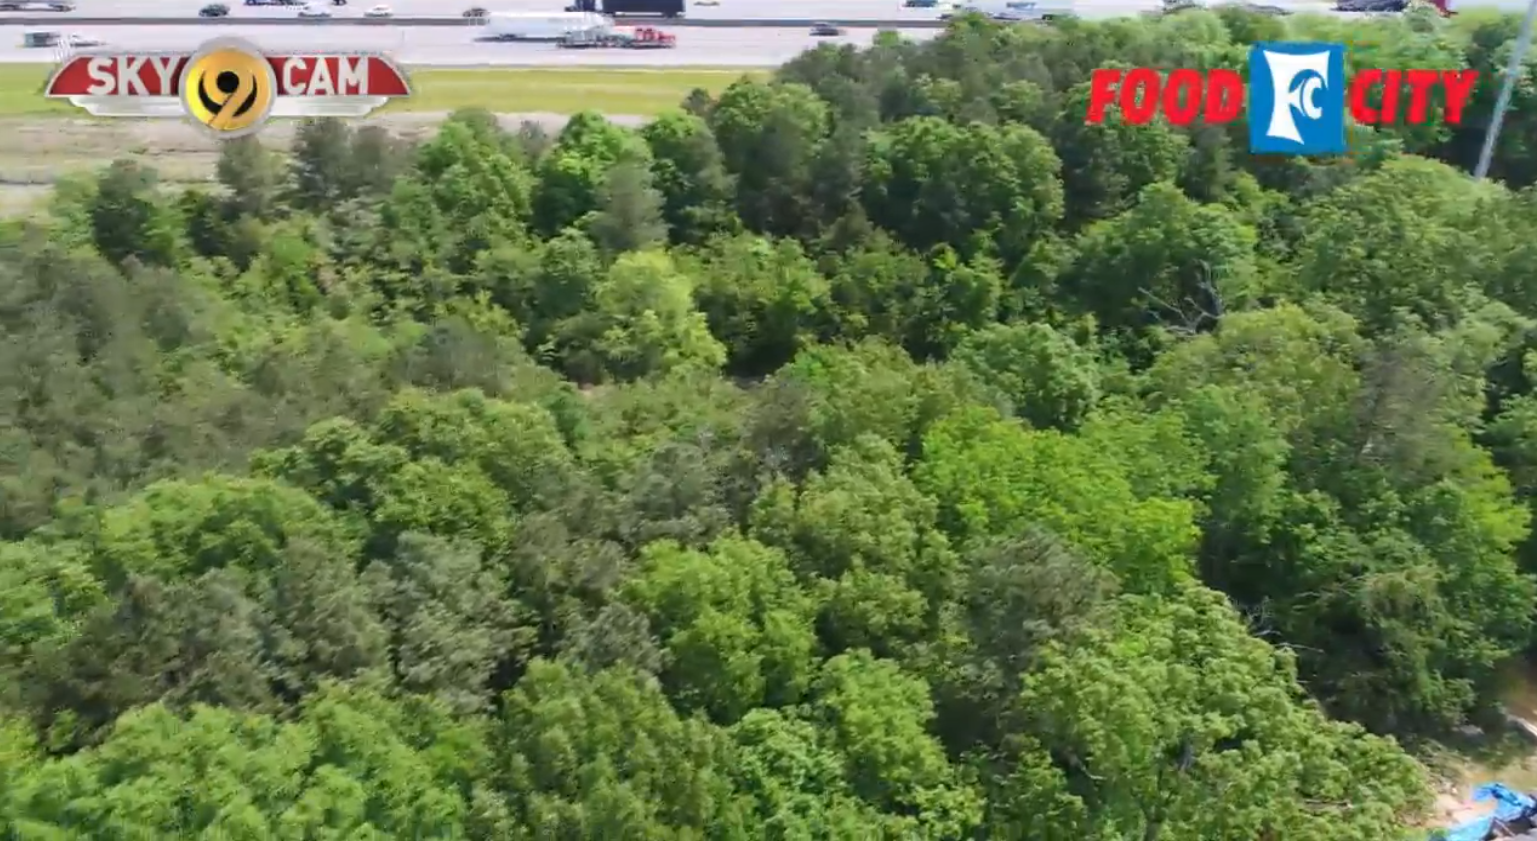 This is the property where the stadium will be built, shown by our SkyCam.{ }